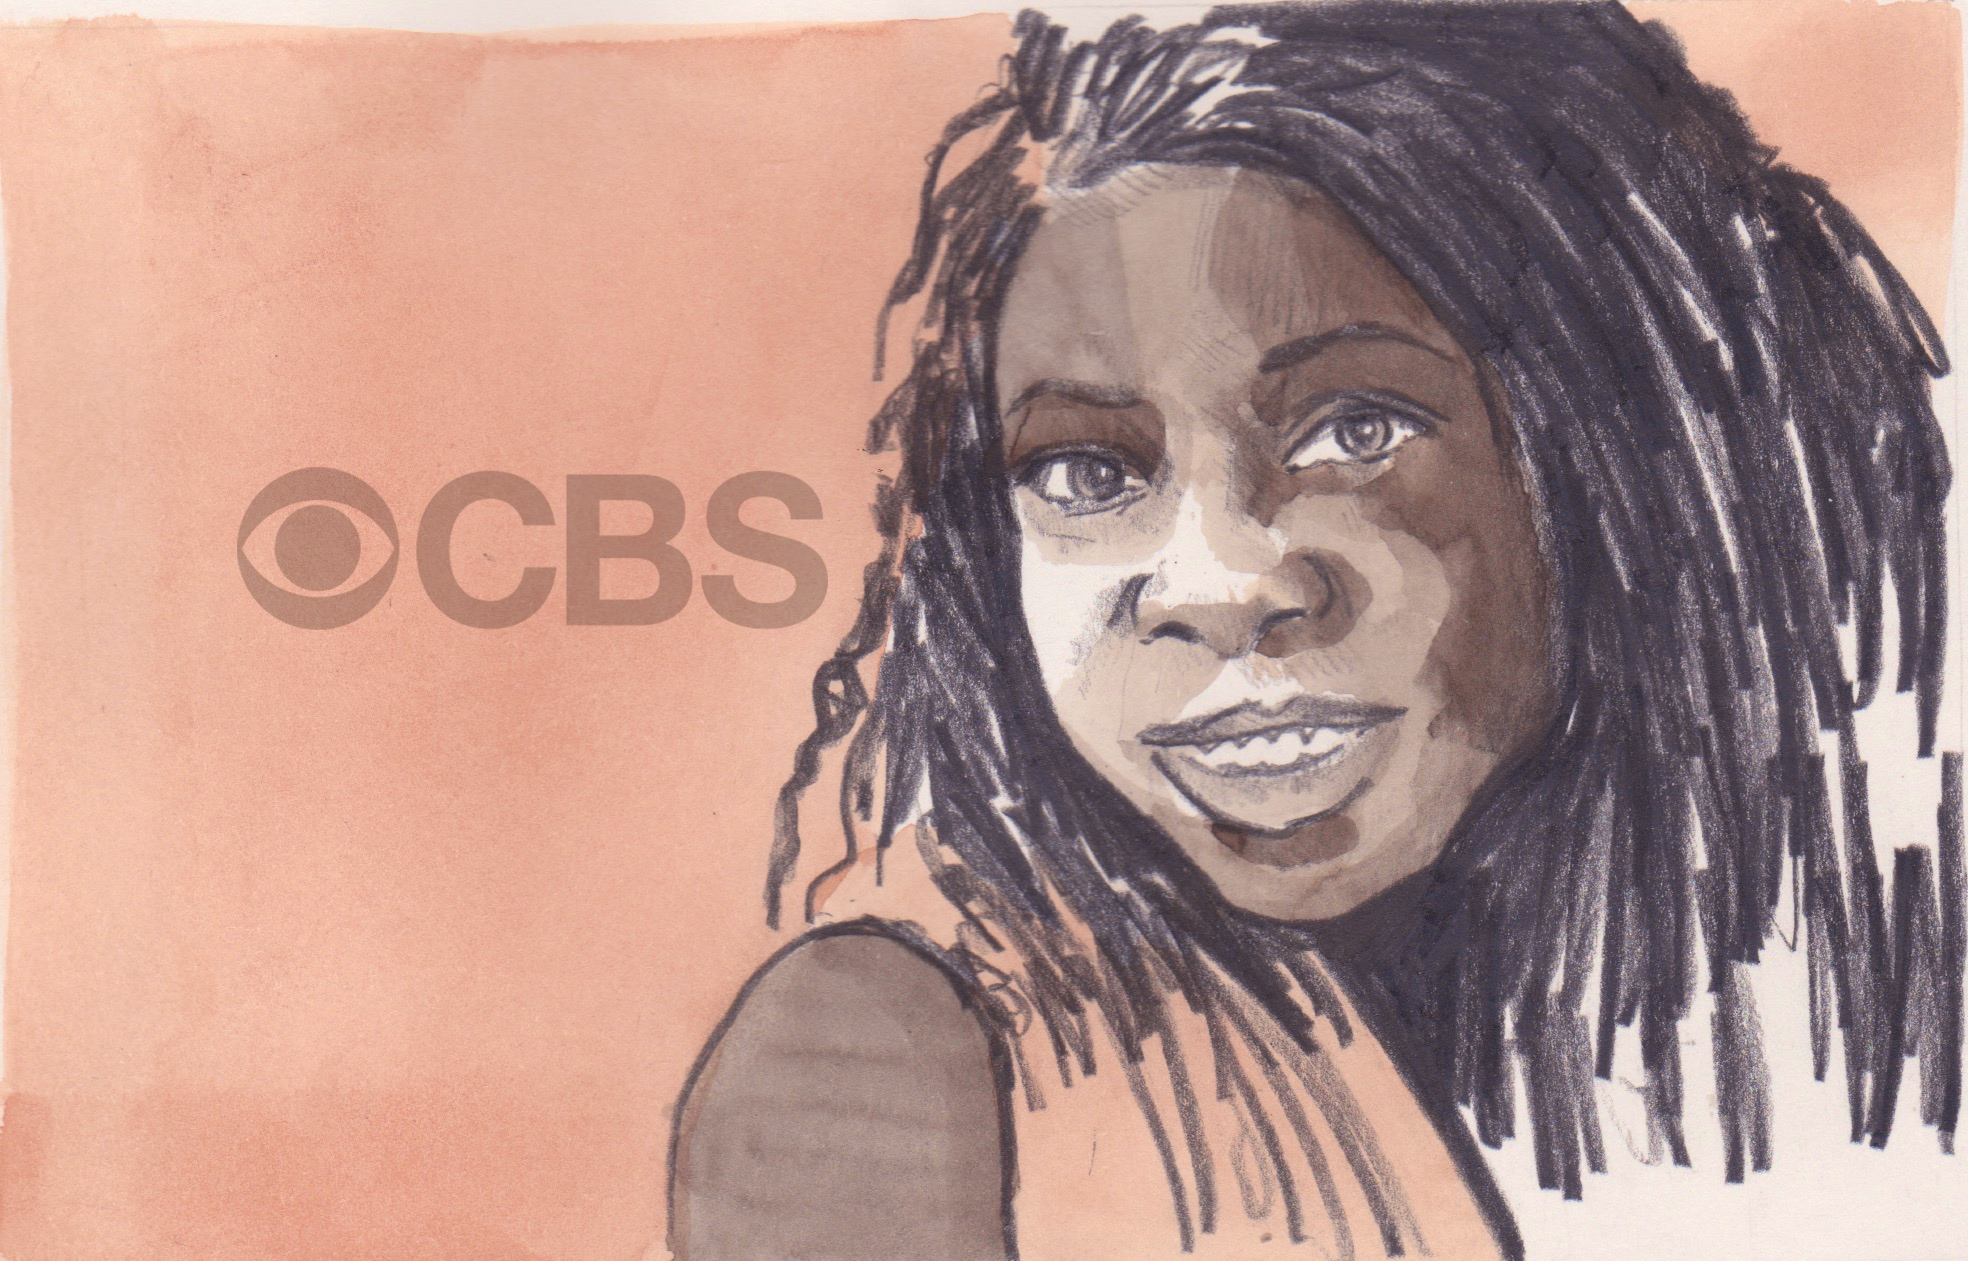 26/03/15  Dayo Olopade is a Nigerian-American journalist and is one of 200 writers and academics who criticised the US television company CBS for its coverage of Africa. An open letter accuses CBS of rendering Africans 'voiceless and all but invisible' in its portrayal of the continent.